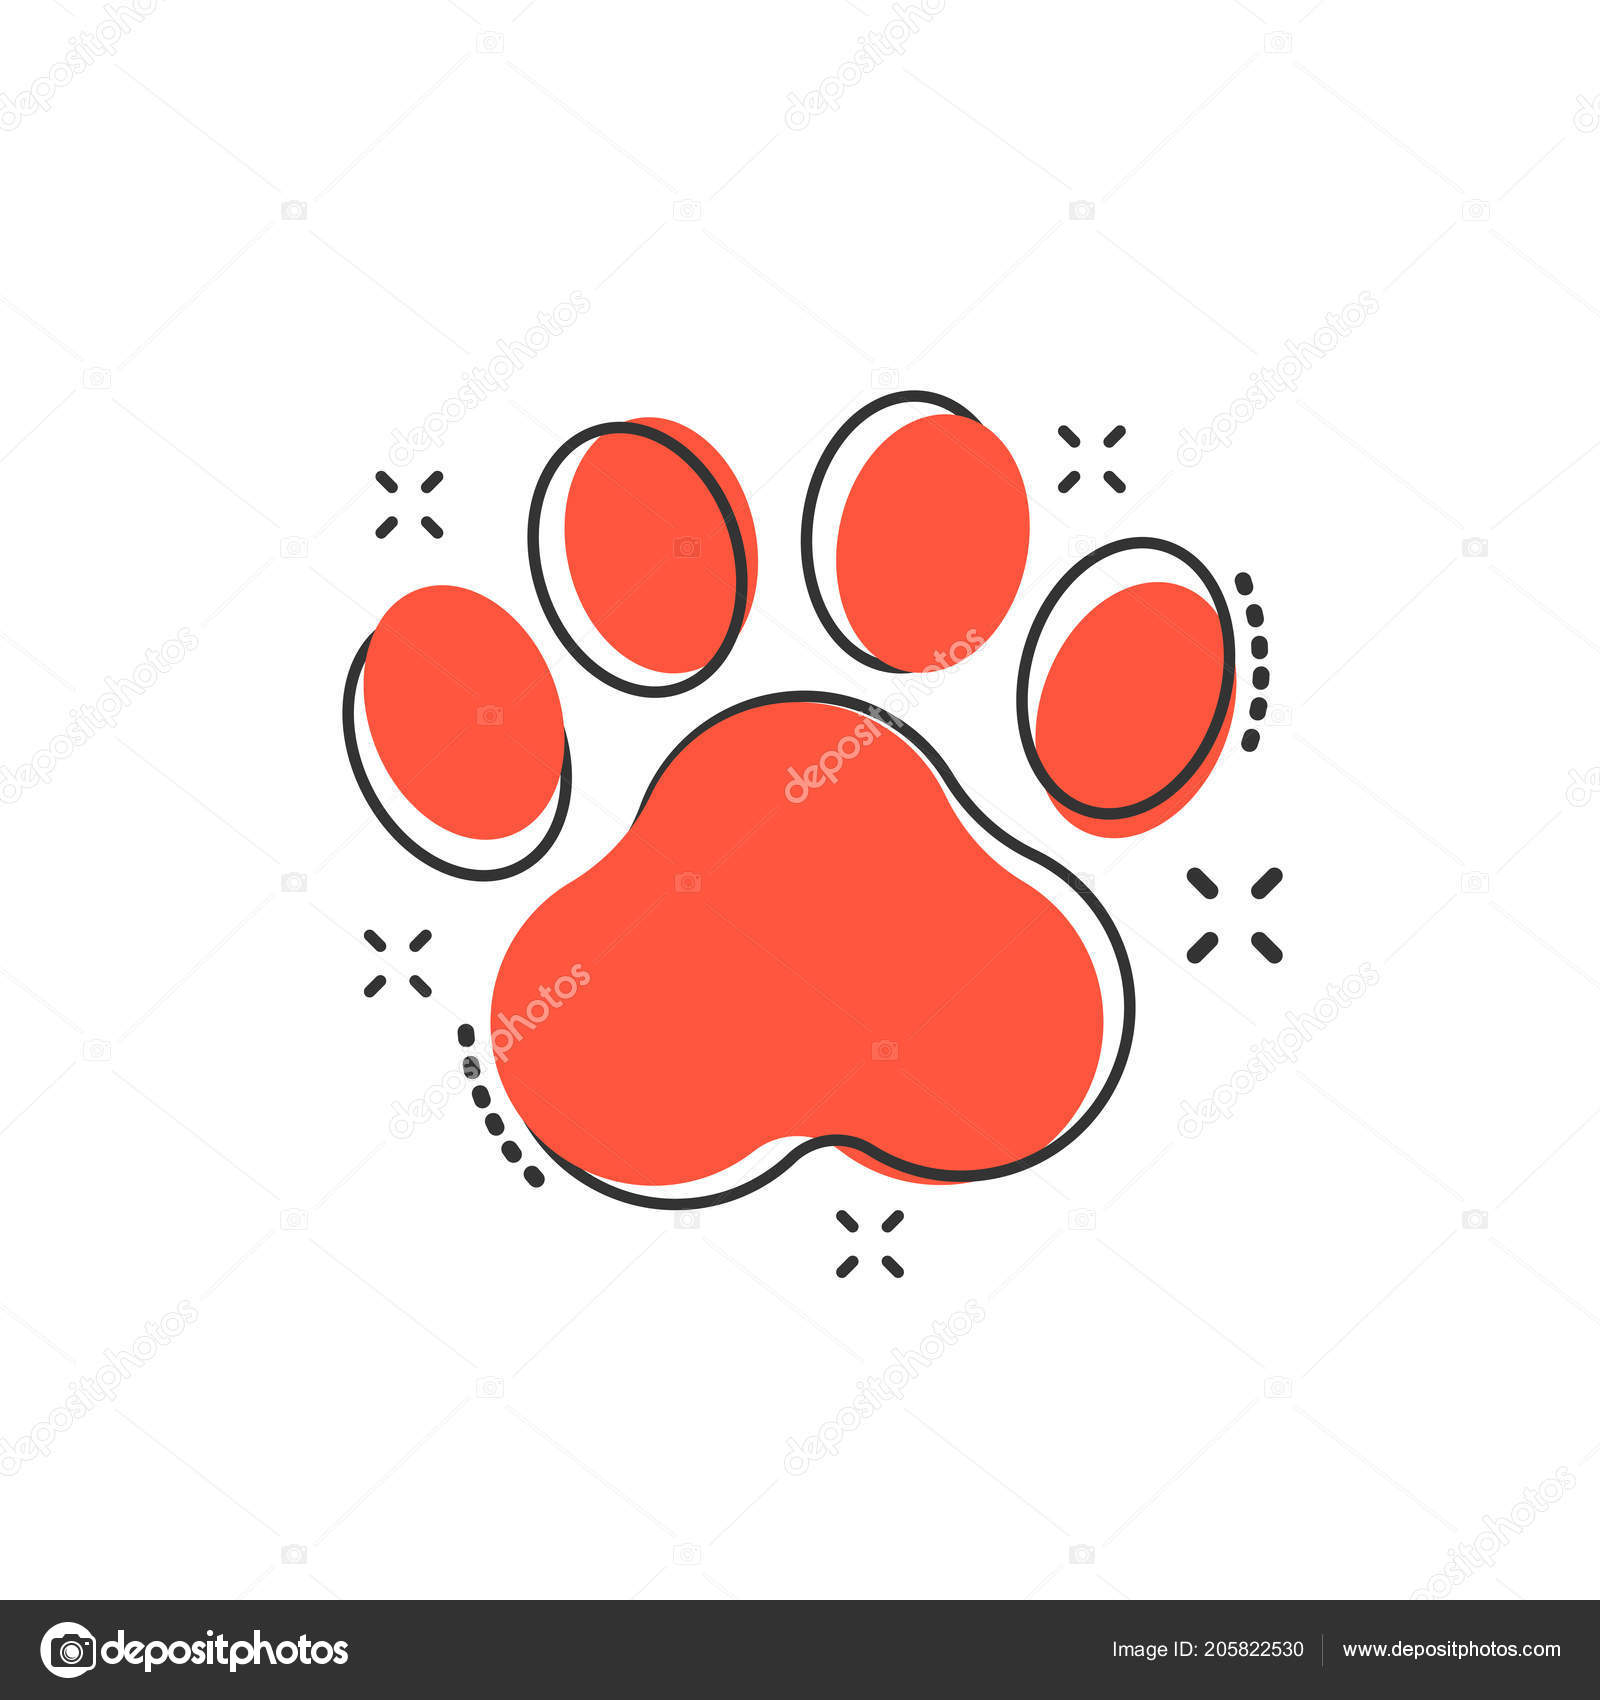 da8af0347f75 Vector cartoon paw print icon in comic style. Dog or cat pawprint sign  illustration pictogram. Animal business splash effect concept. — Vector by  sanek13744